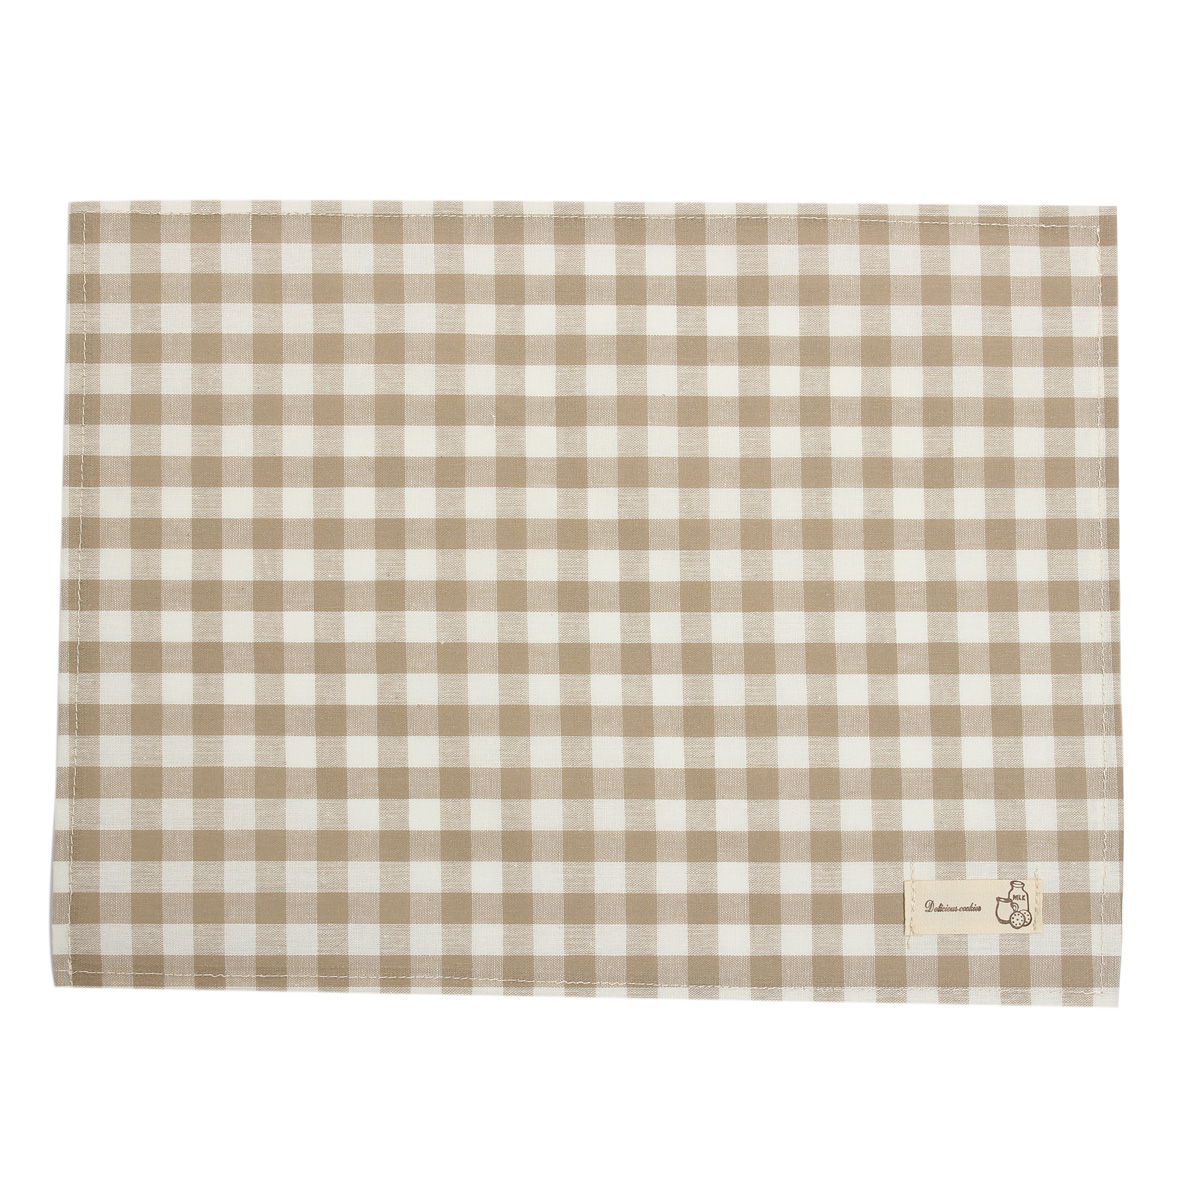 Cotton linen cloth table placemat heat insulation pad for Table placemats